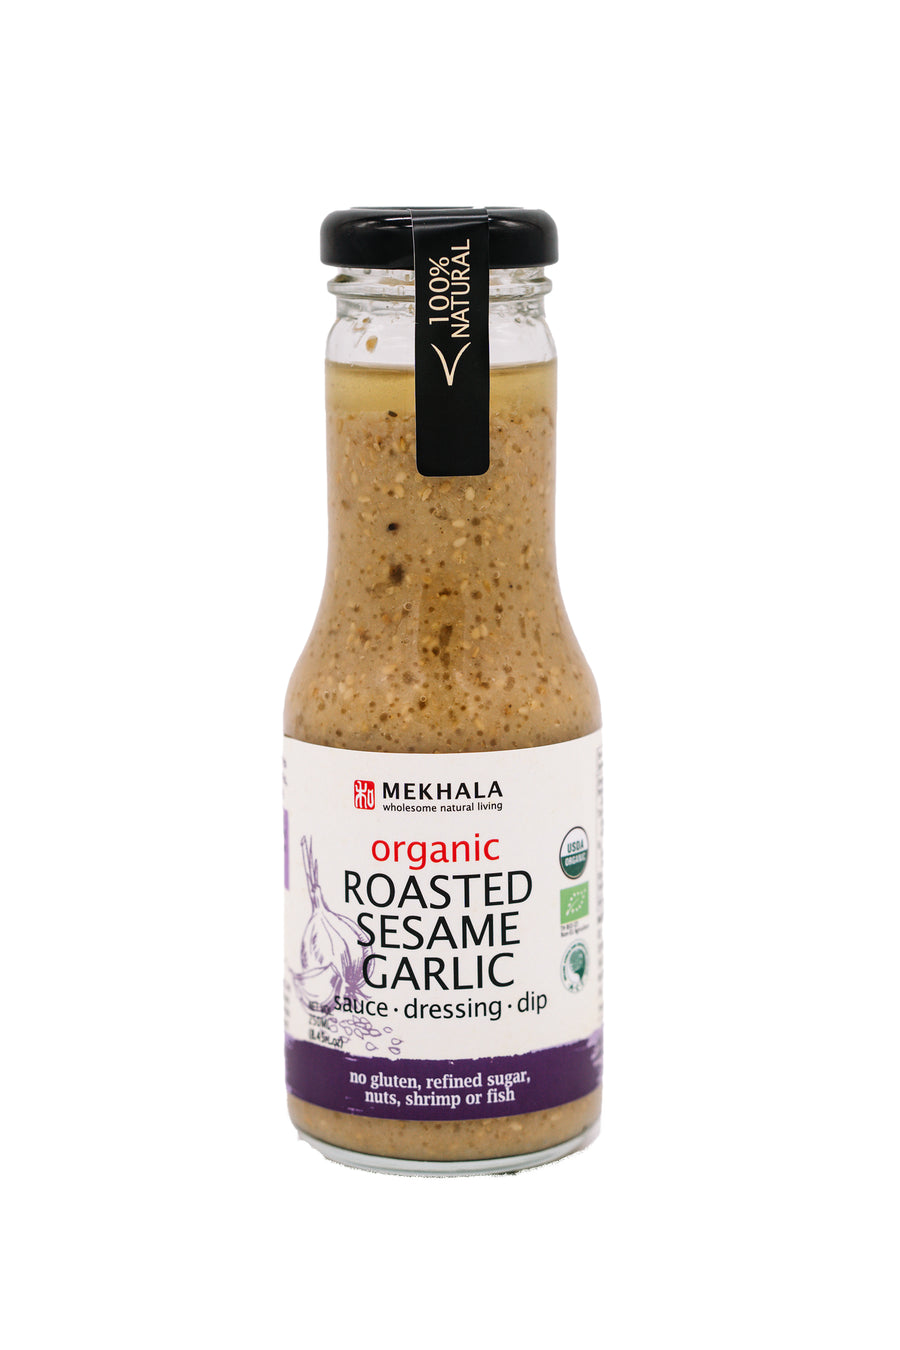 Mekhala Living Organic Roasted Sesame Garlic Sauce (250ml)